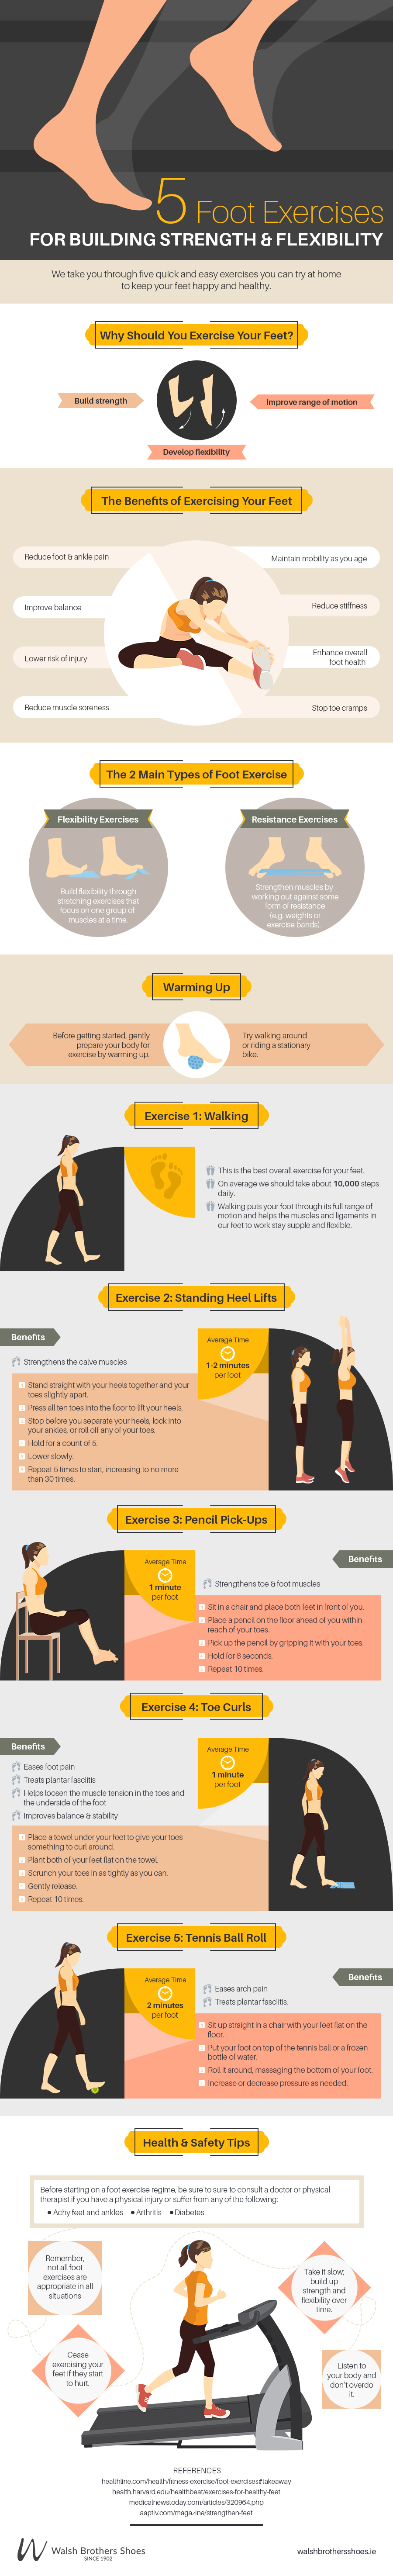 5 Foot Exercises For Building Strength and Flexibility(Infographics).jpg